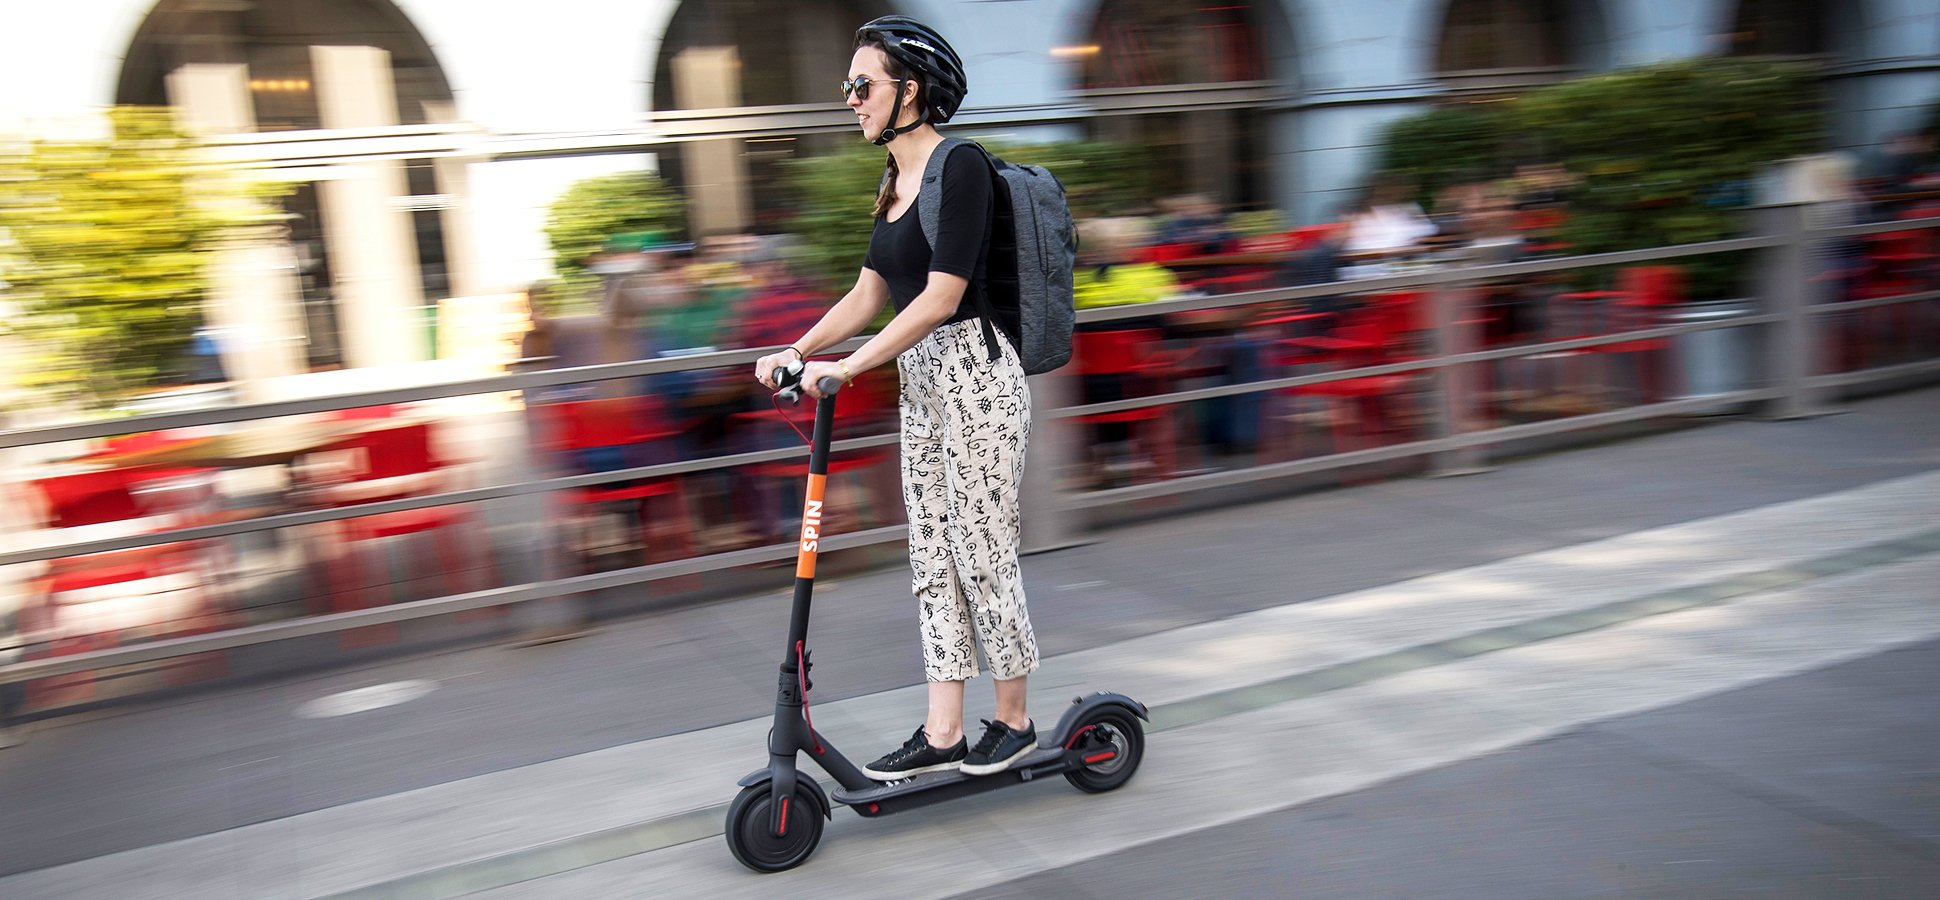 Scooter Rental San Francisco >> E-Scooter Rental Companies 'Take A Page from Uber's ...